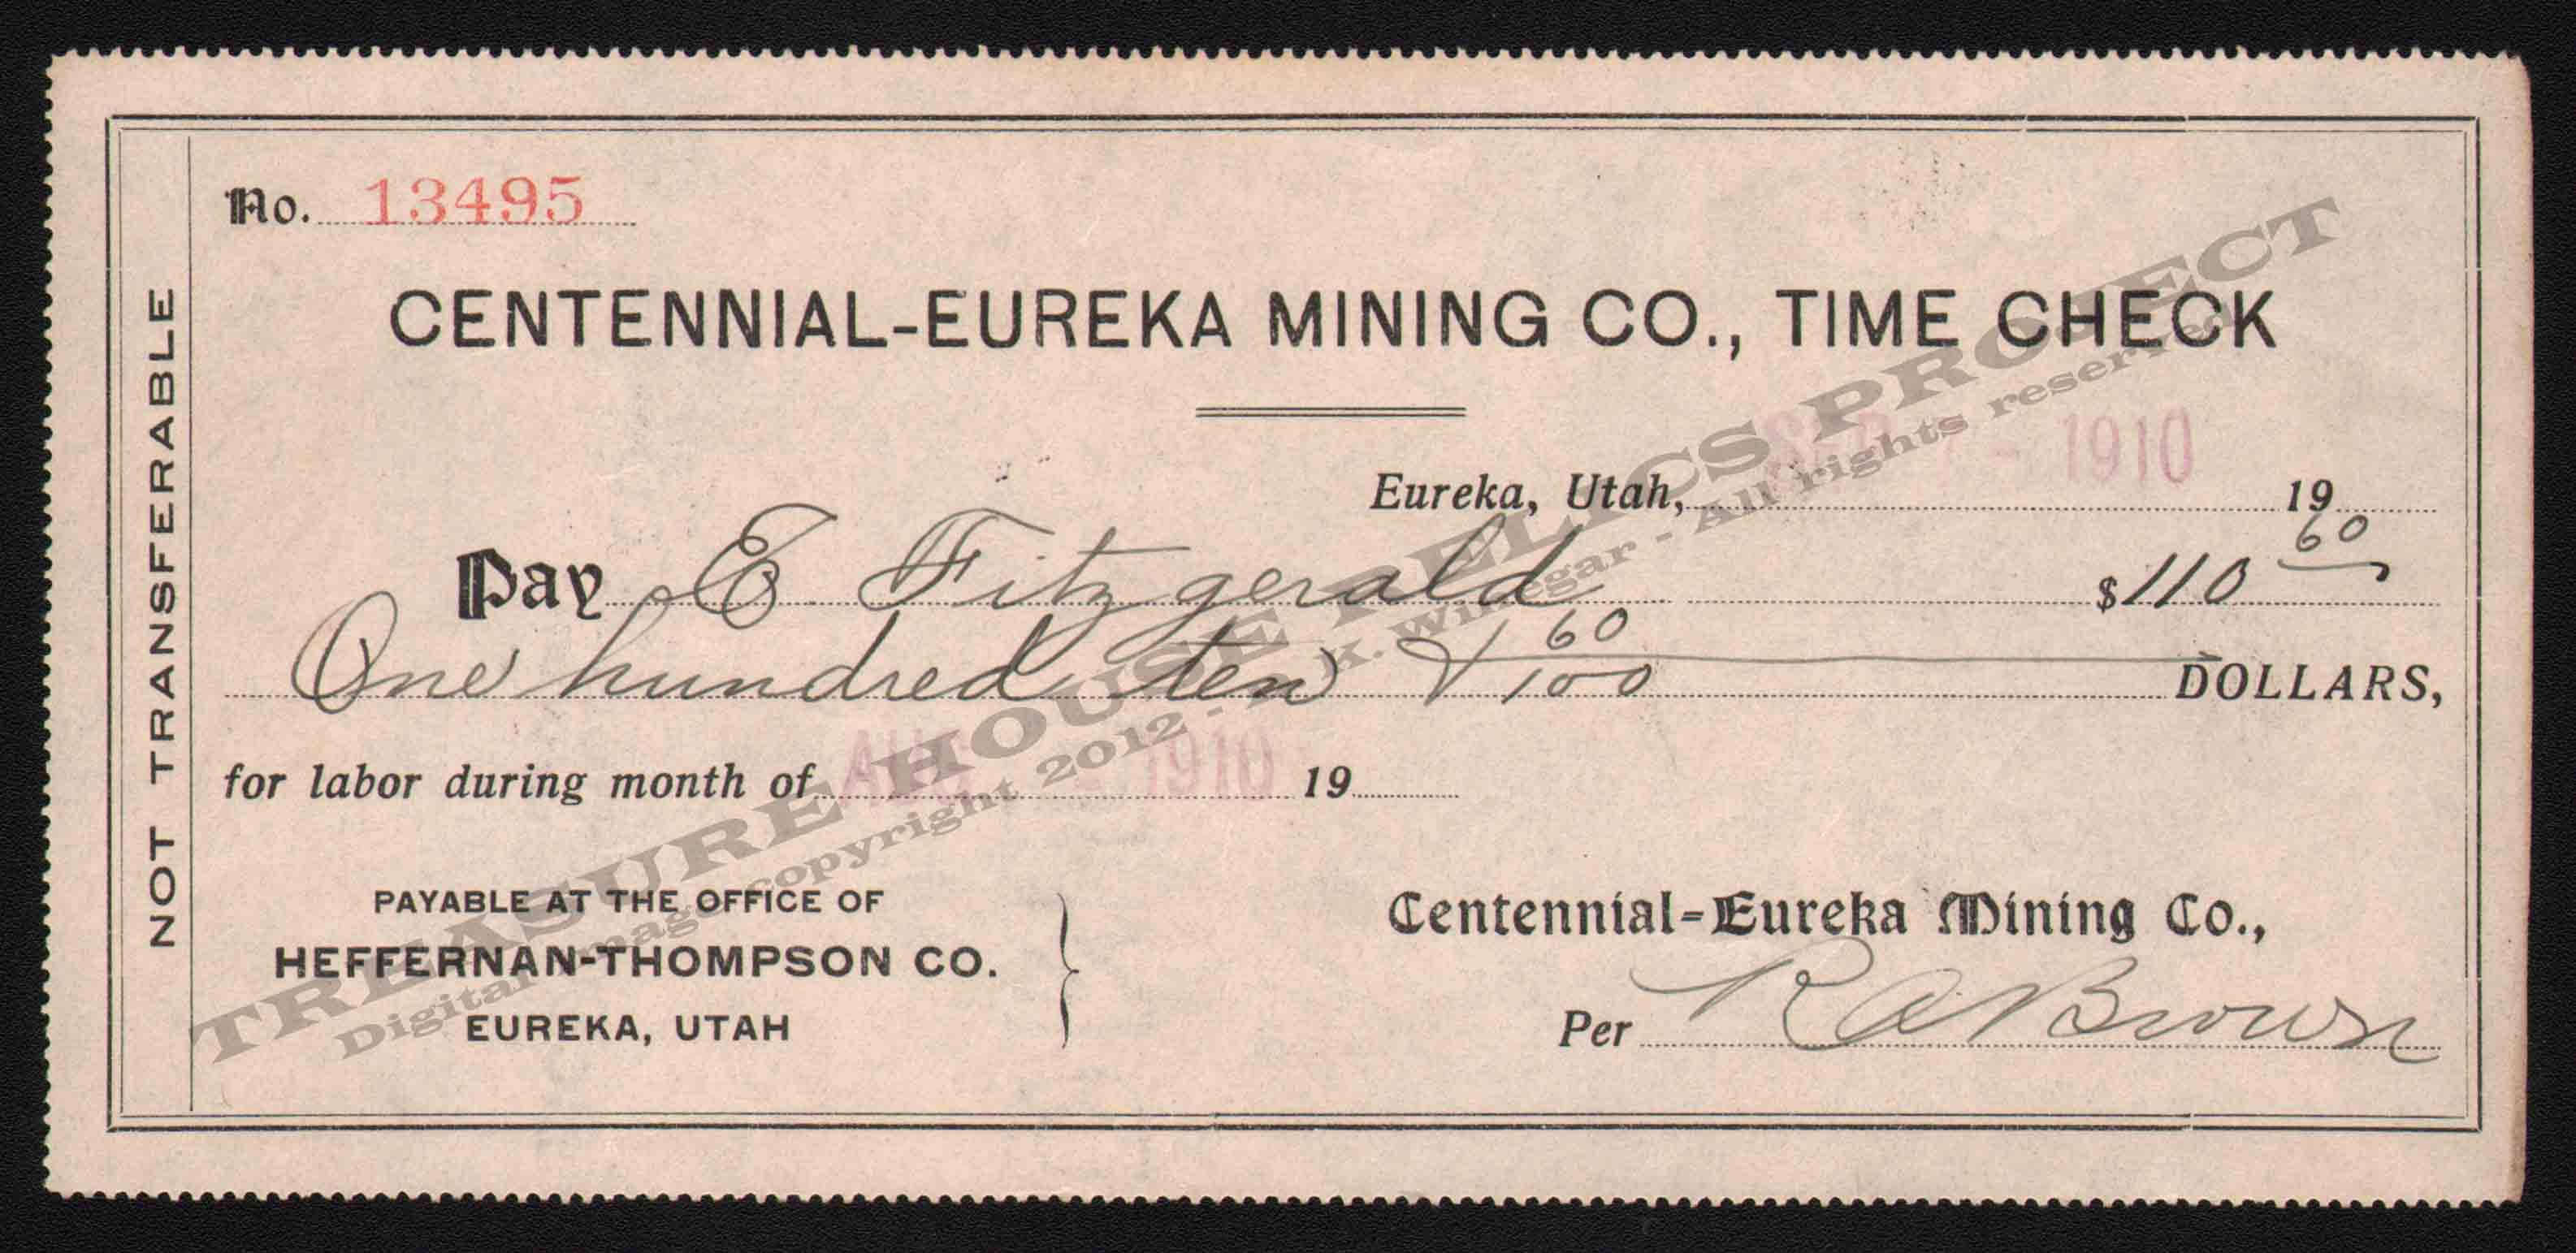 LETTERHEAD/CHECK_CENTENNIAL_EUREKA_MINING_CO_TIME_CHECK_18495_1910_GP_400_CROP_EMBOSS.jpg